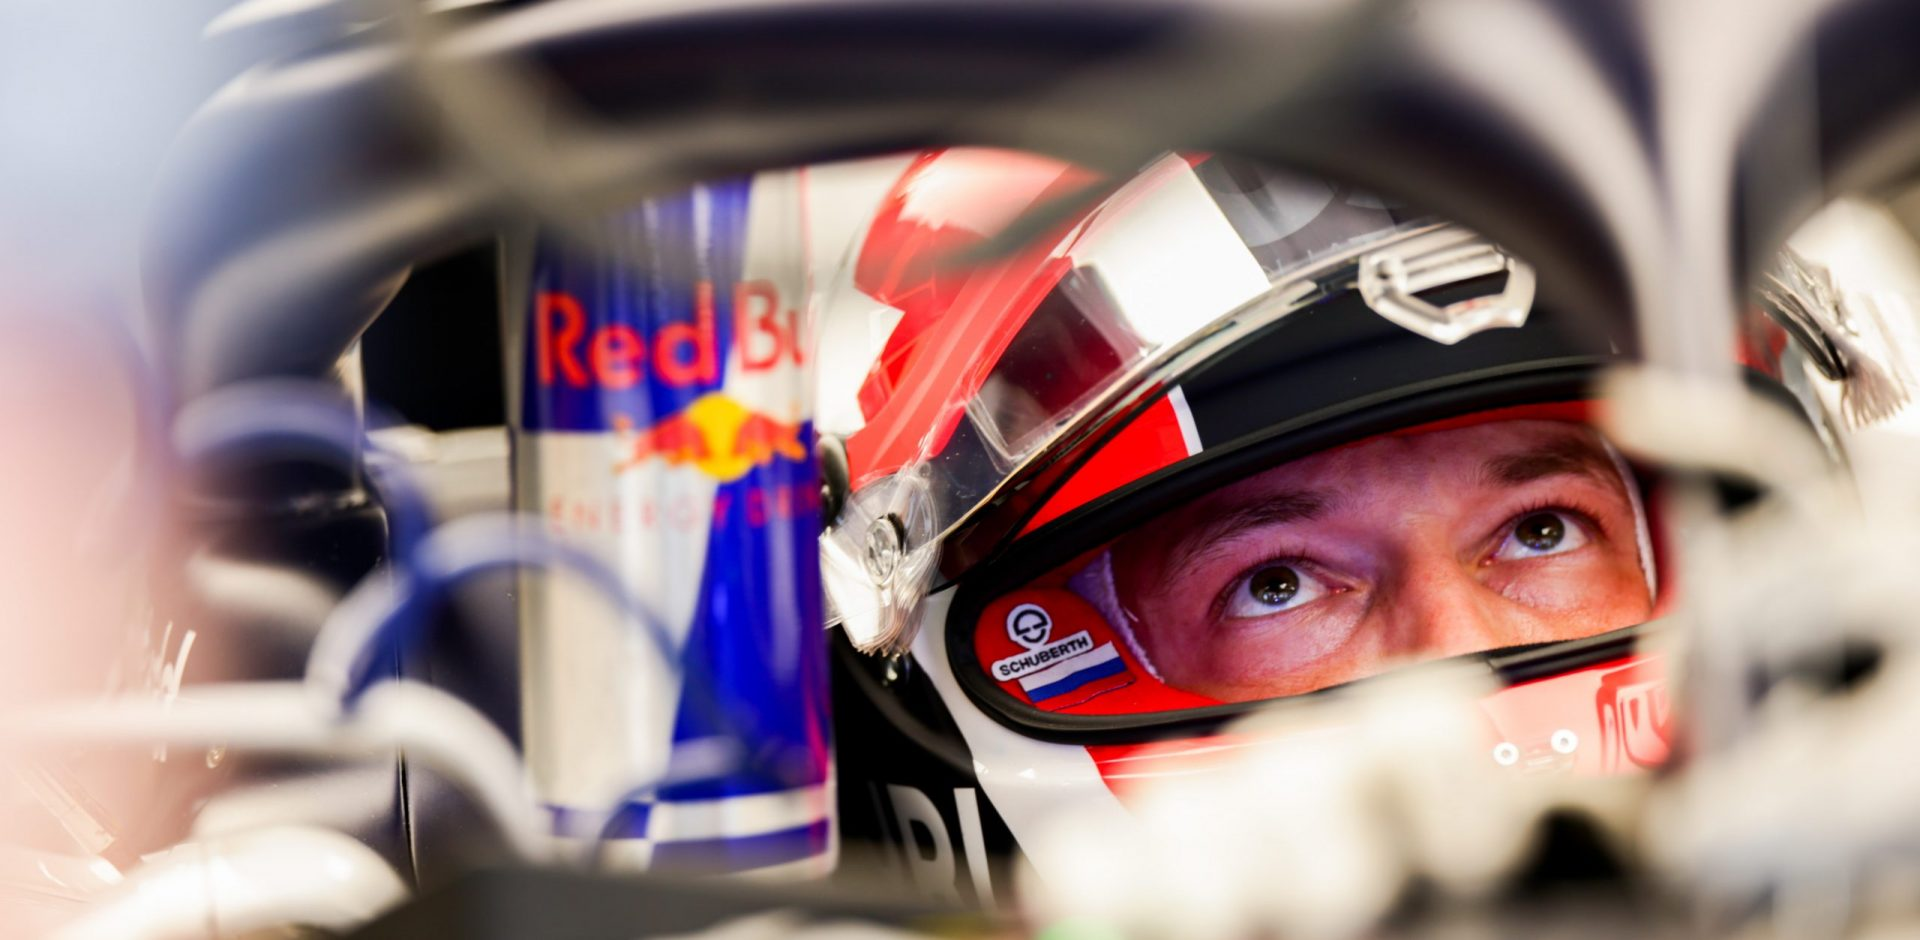 BARCELONA, SPAIN - AUGUST 14: Daniil Kvyat of Scuderia AlphaTauri and Russia  during practice for the F1 Grand Prix of Spain at Circuit de Barcelona-Catalunya on August 14, 2020 in Barcelona, Spain. (Photo by Peter Fox/Getty Images) // Getty Images / Red Bull Content Pool  // SI202008140670 // Usage for editorial use only //